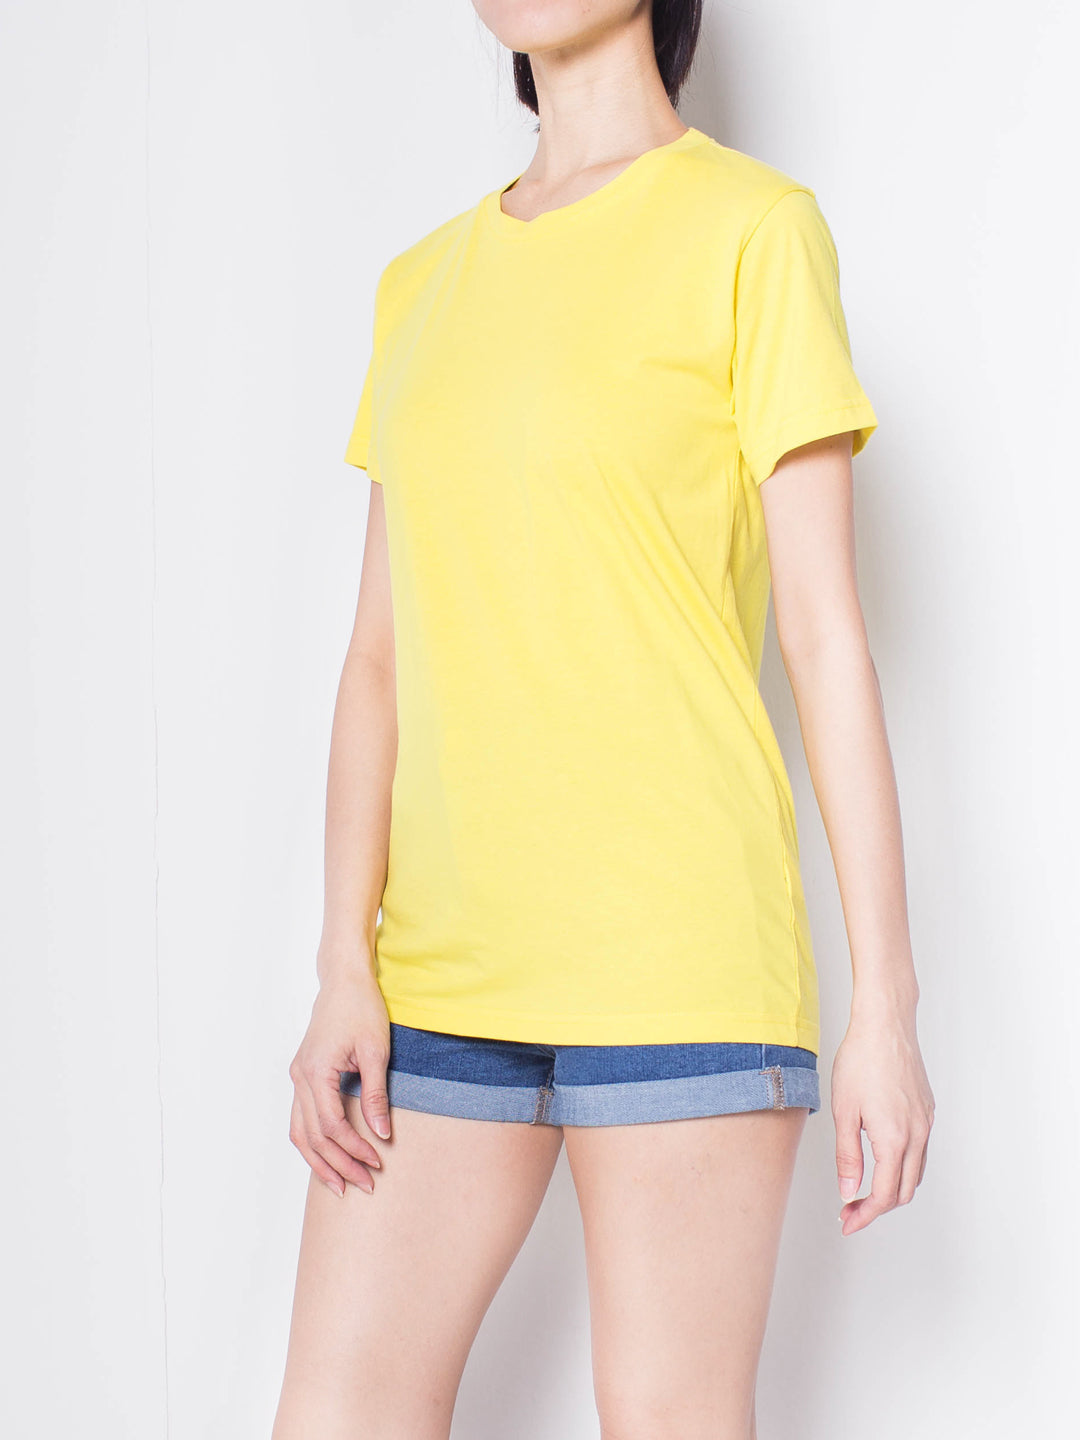 Women Short Sleeve T-Shirt - Light Yellow